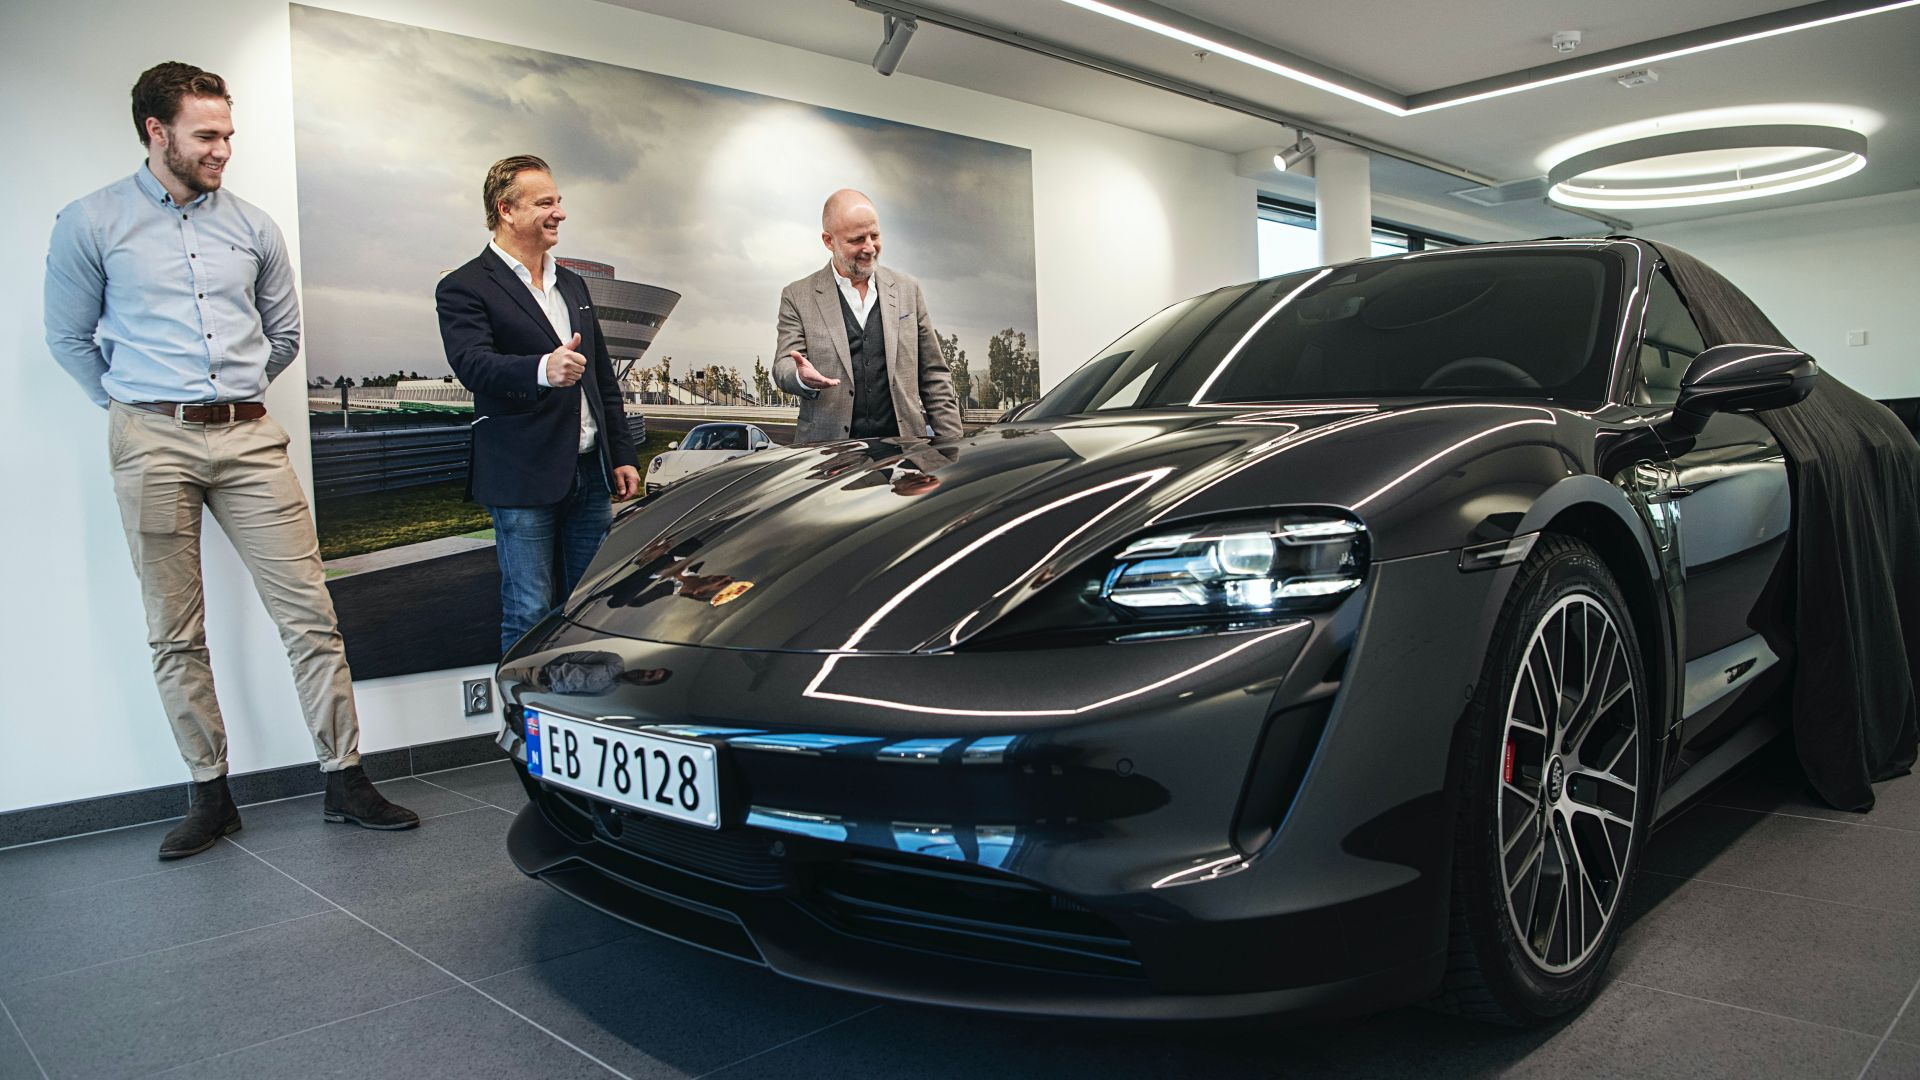 1000th-Porsche-Taycan-delivered-in-Norway-5